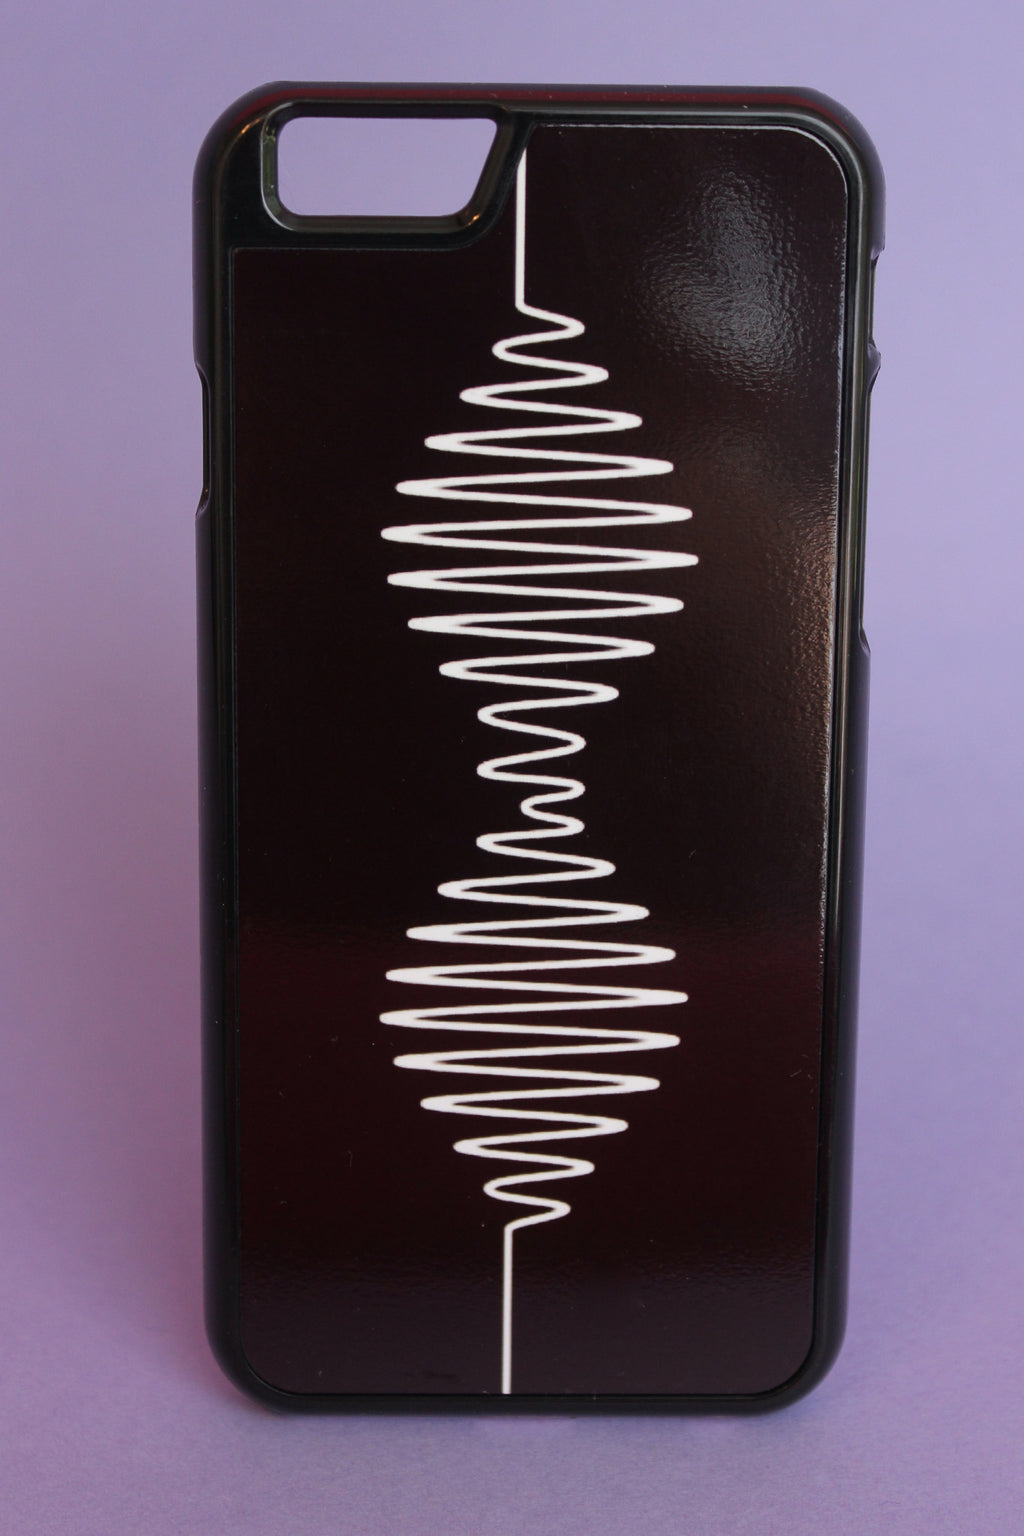 AM Sound Waves Phone Case